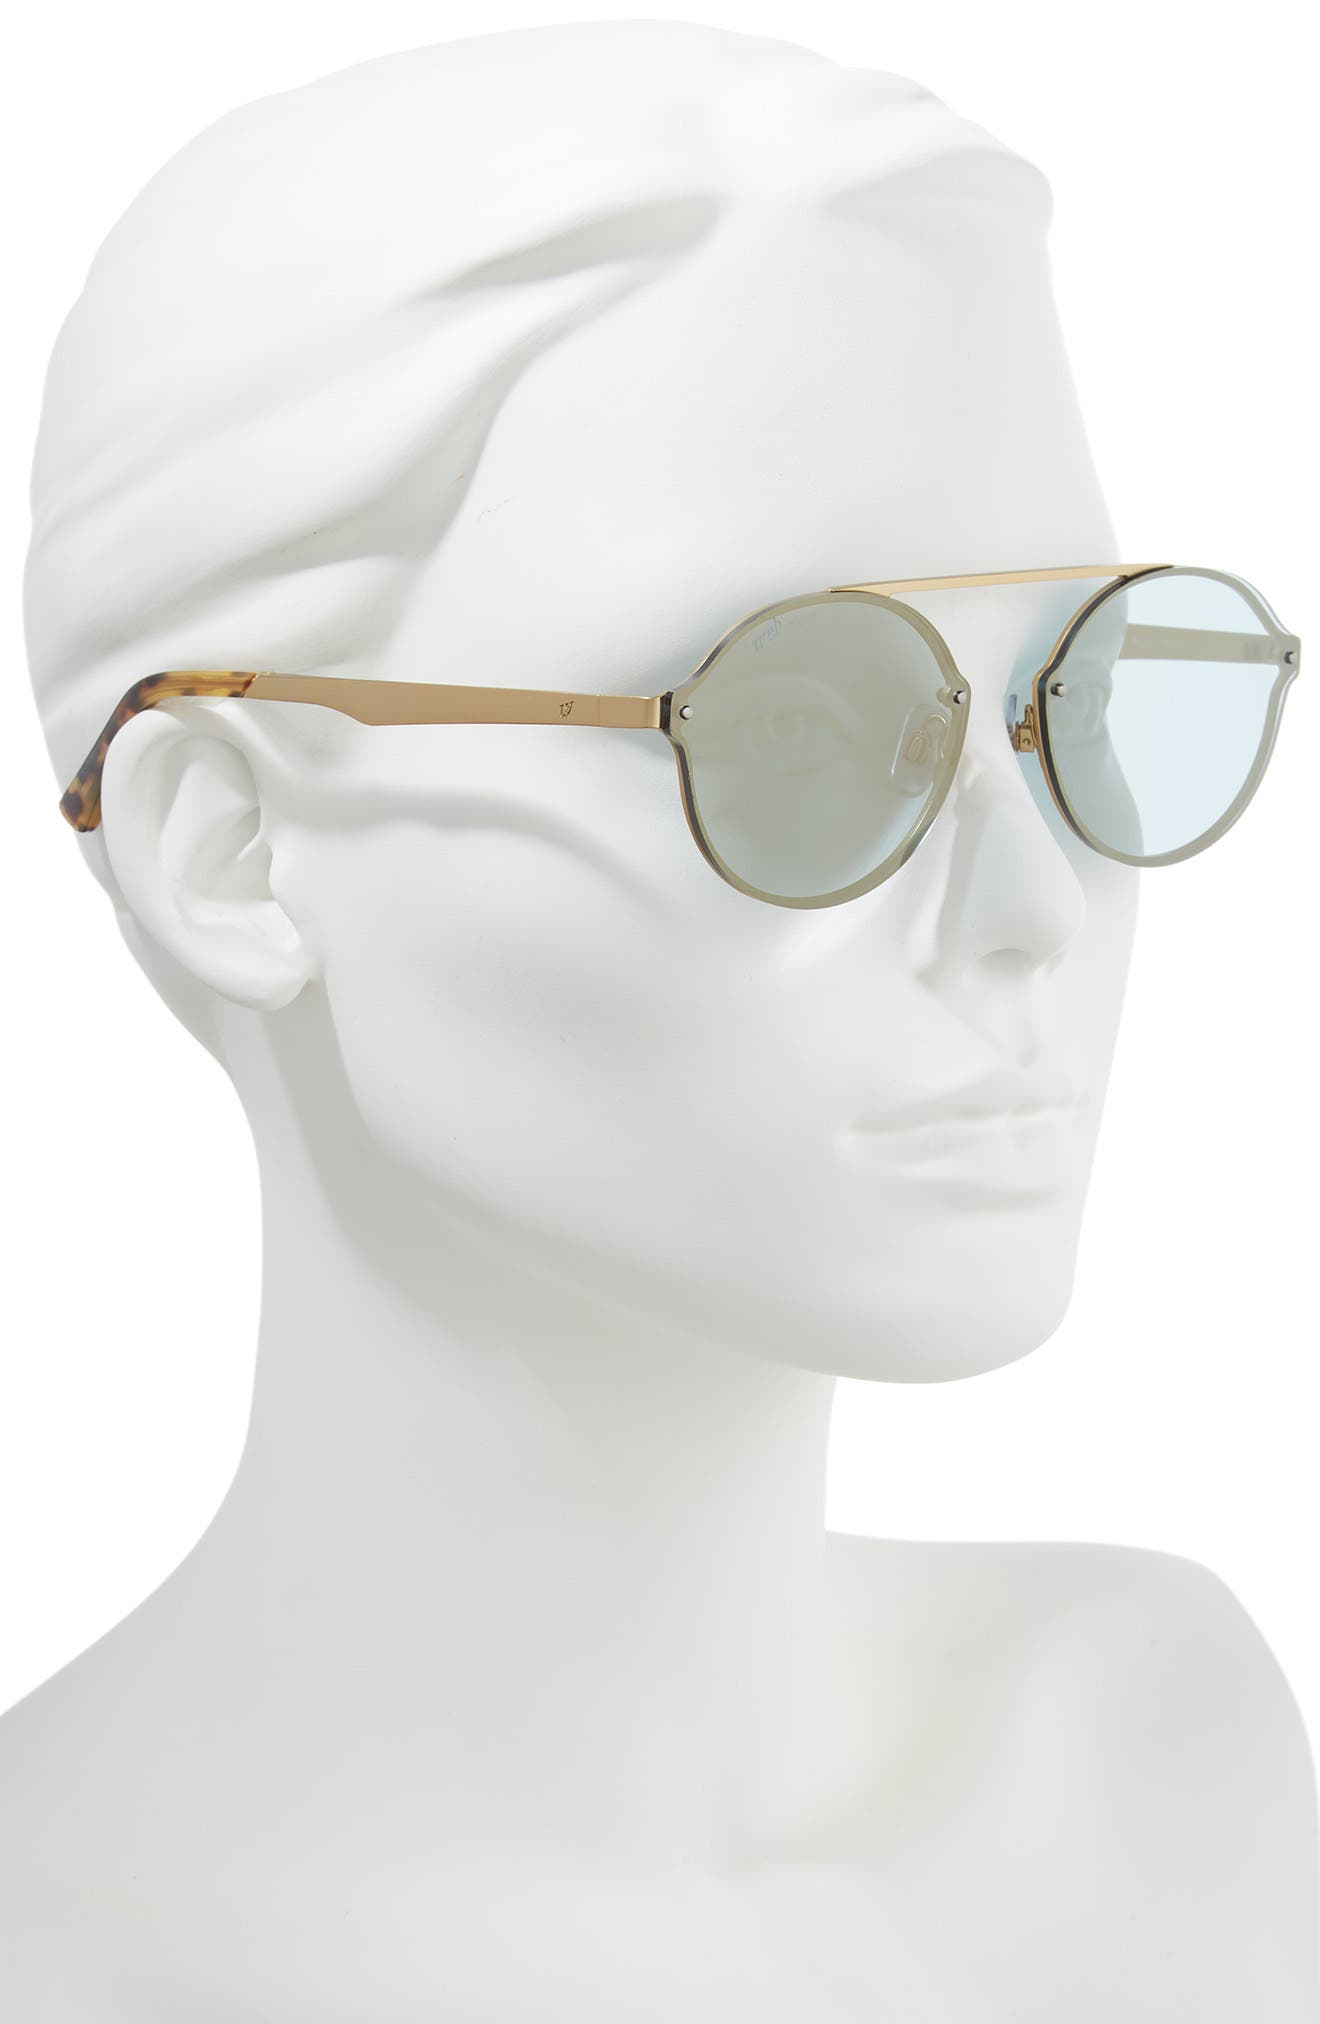 58mm Round Sunglasses,                             Alternate thumbnail 2, color,                             GOLD/ BLUE